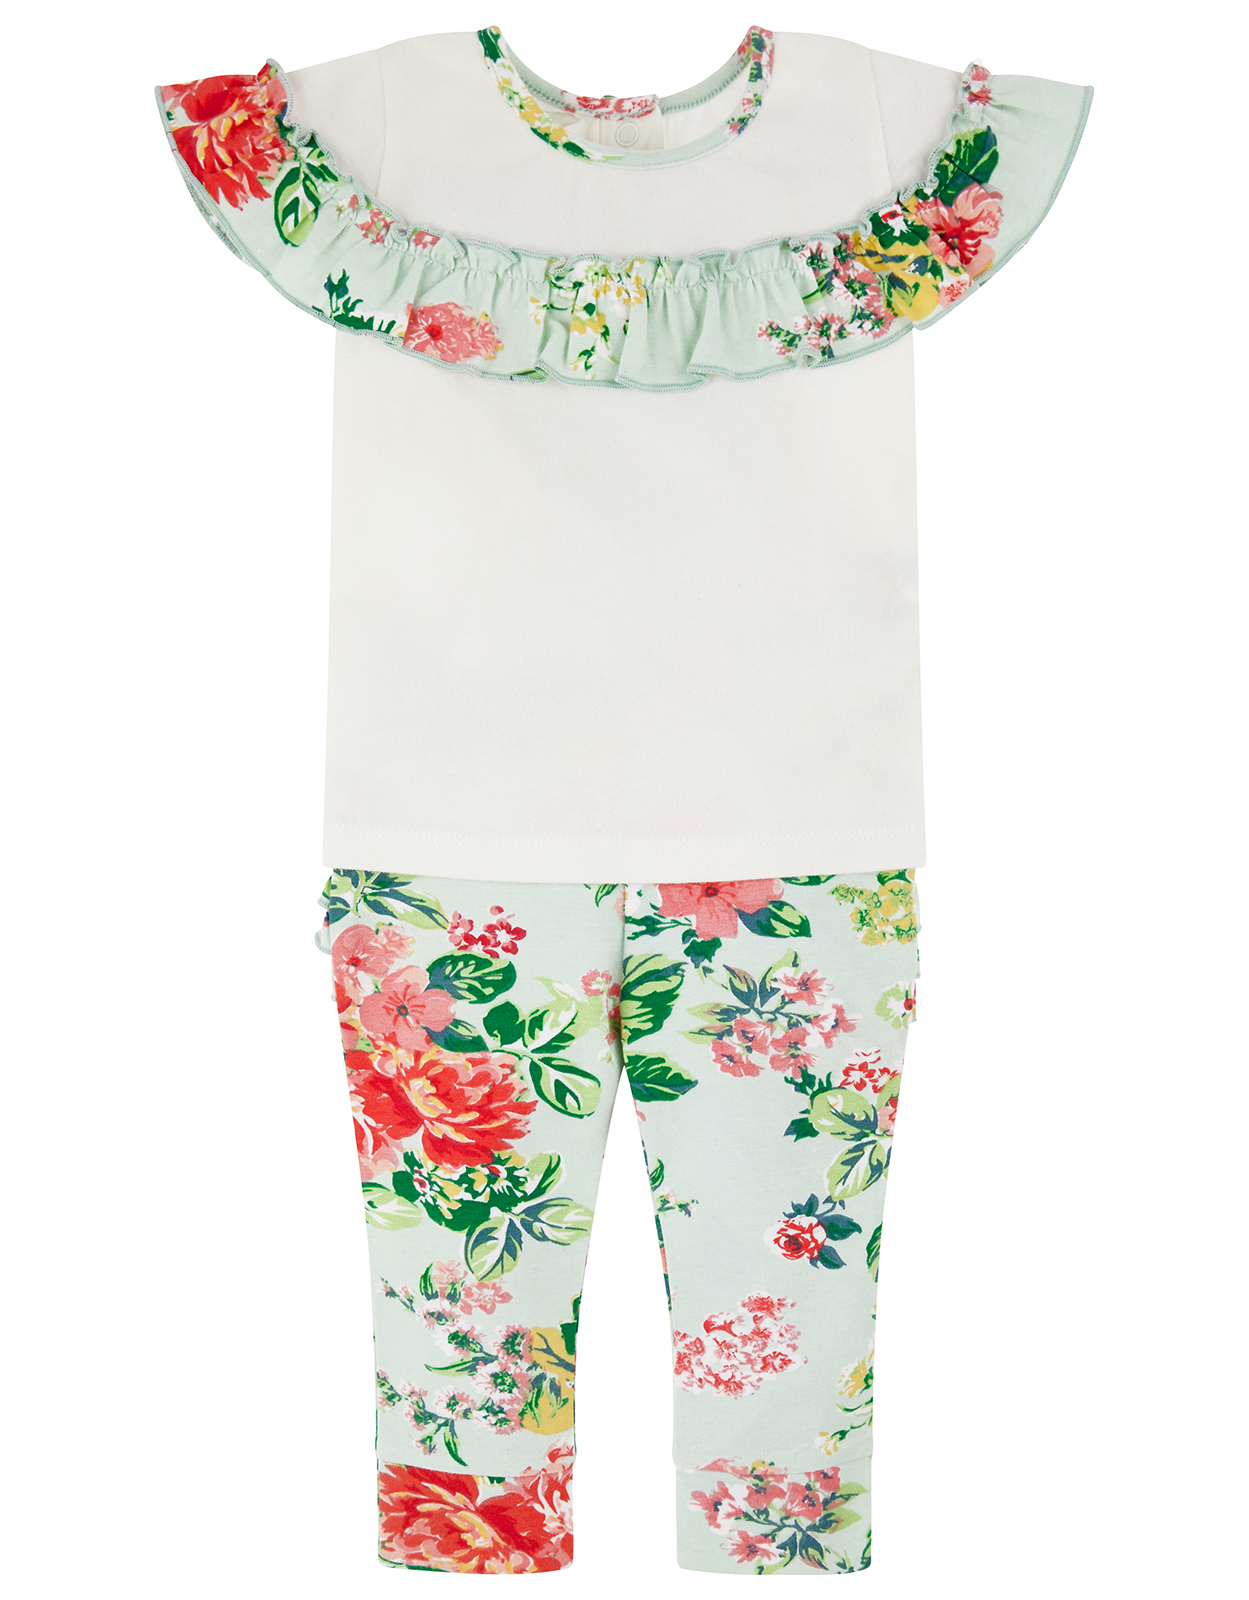 Monsoon Newborn Baby Darcy Top & Leggings Set